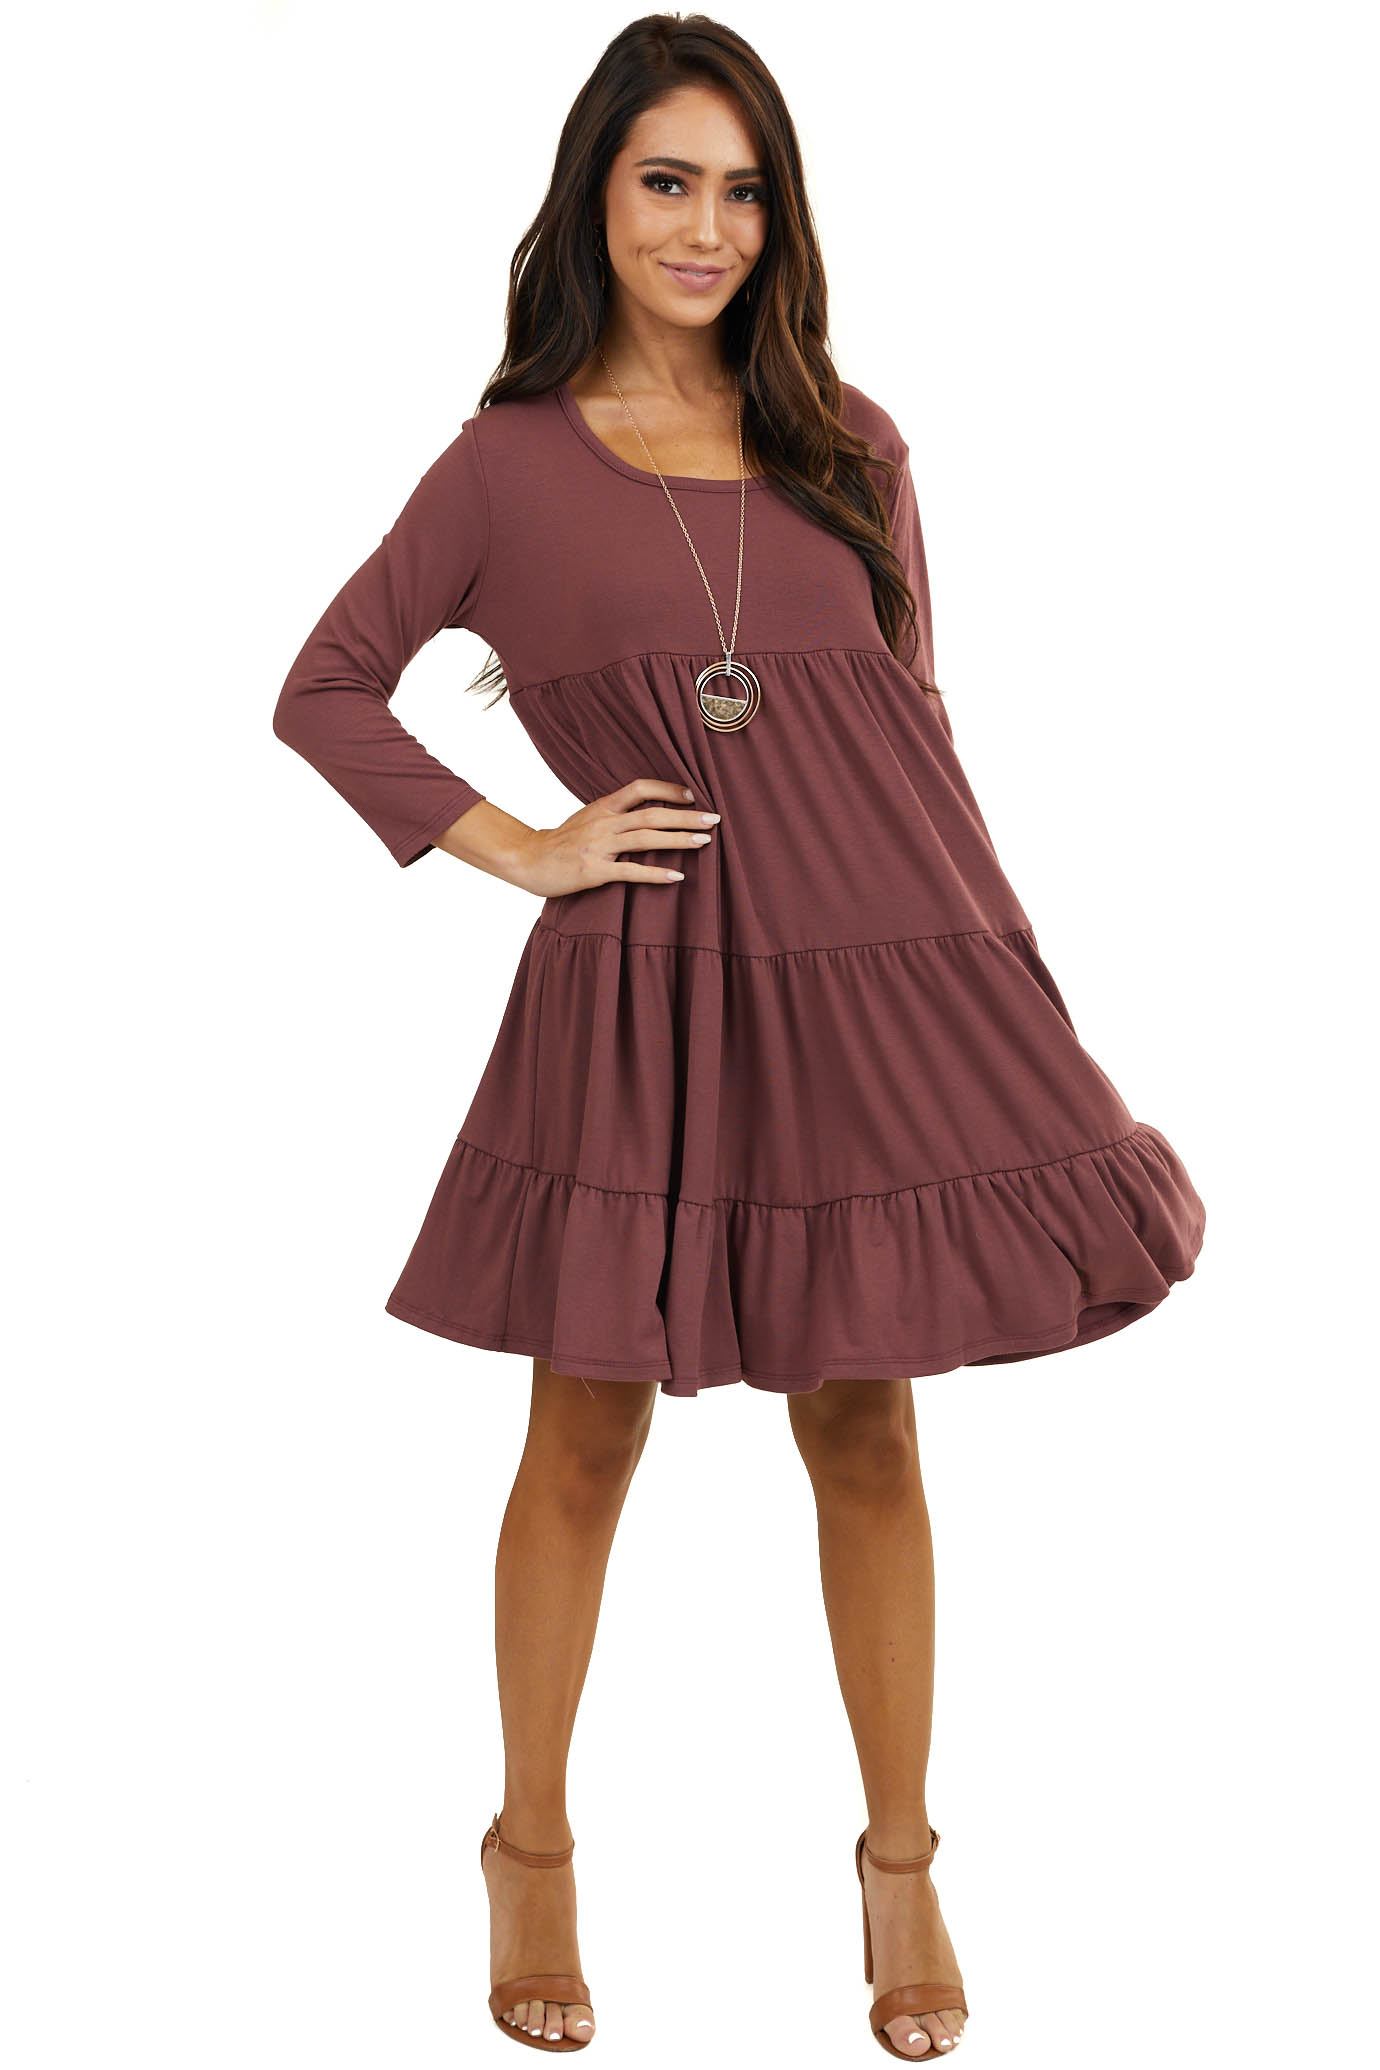 Mauve Tiered Short Knit Dress with 3/4 Length Sleeves